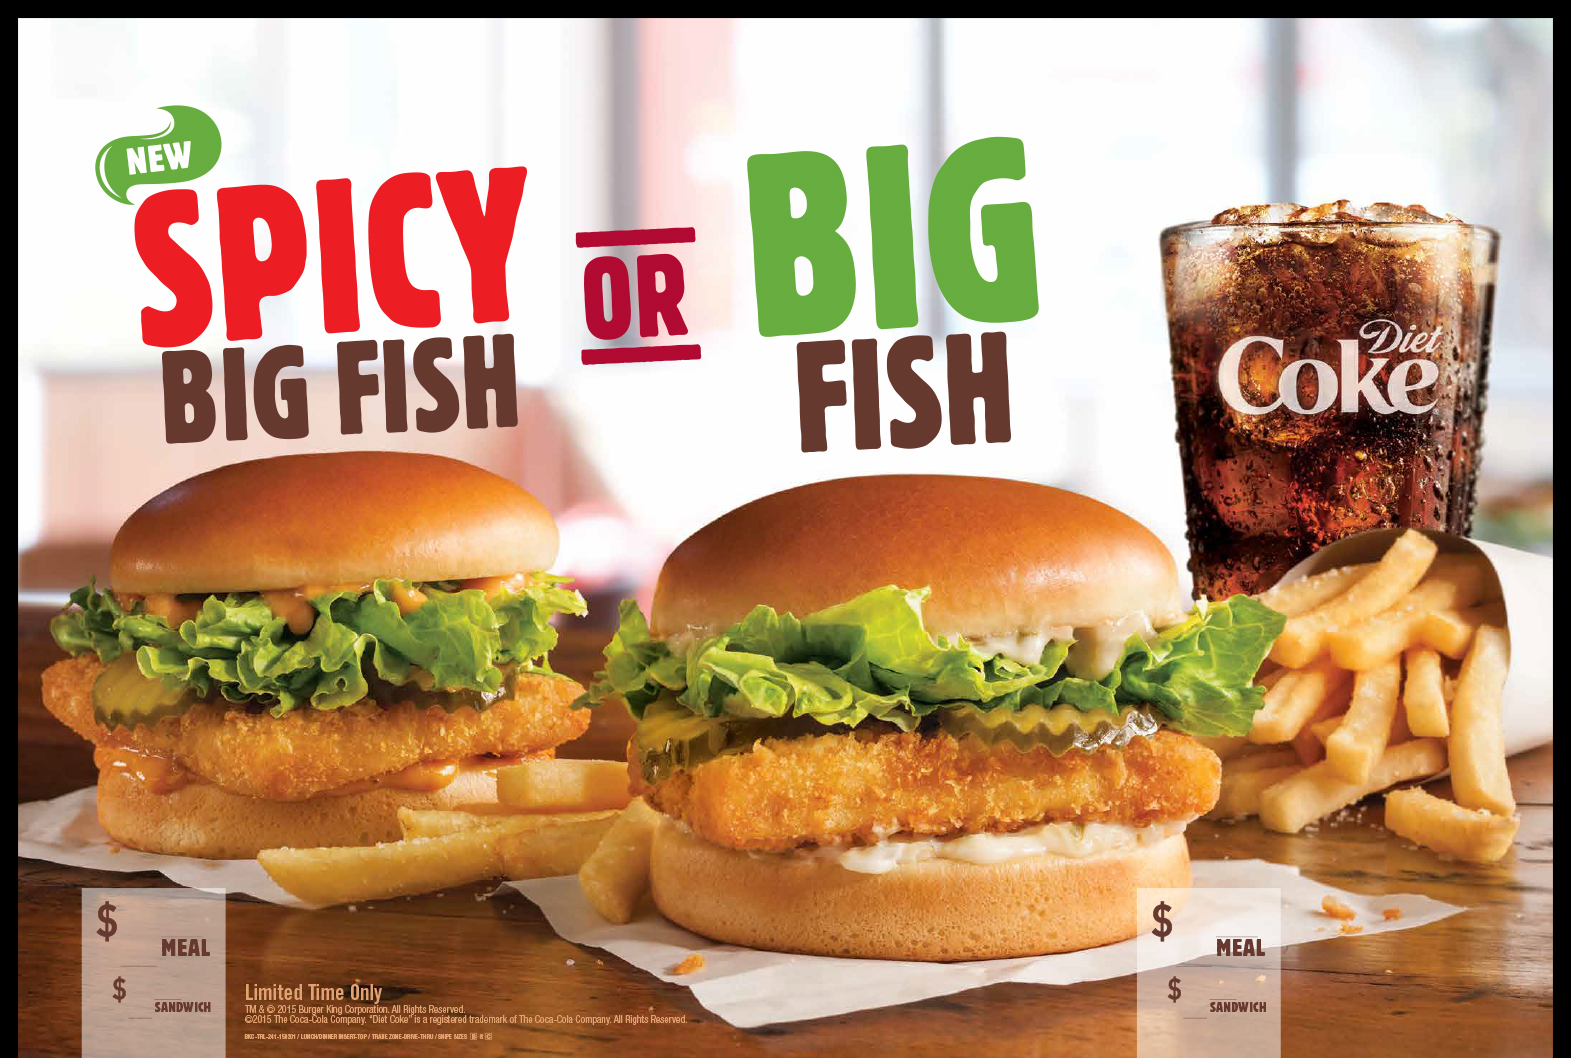 Burger King Big Fish Of Burger King Restaurants Look To Hook Guests With The New